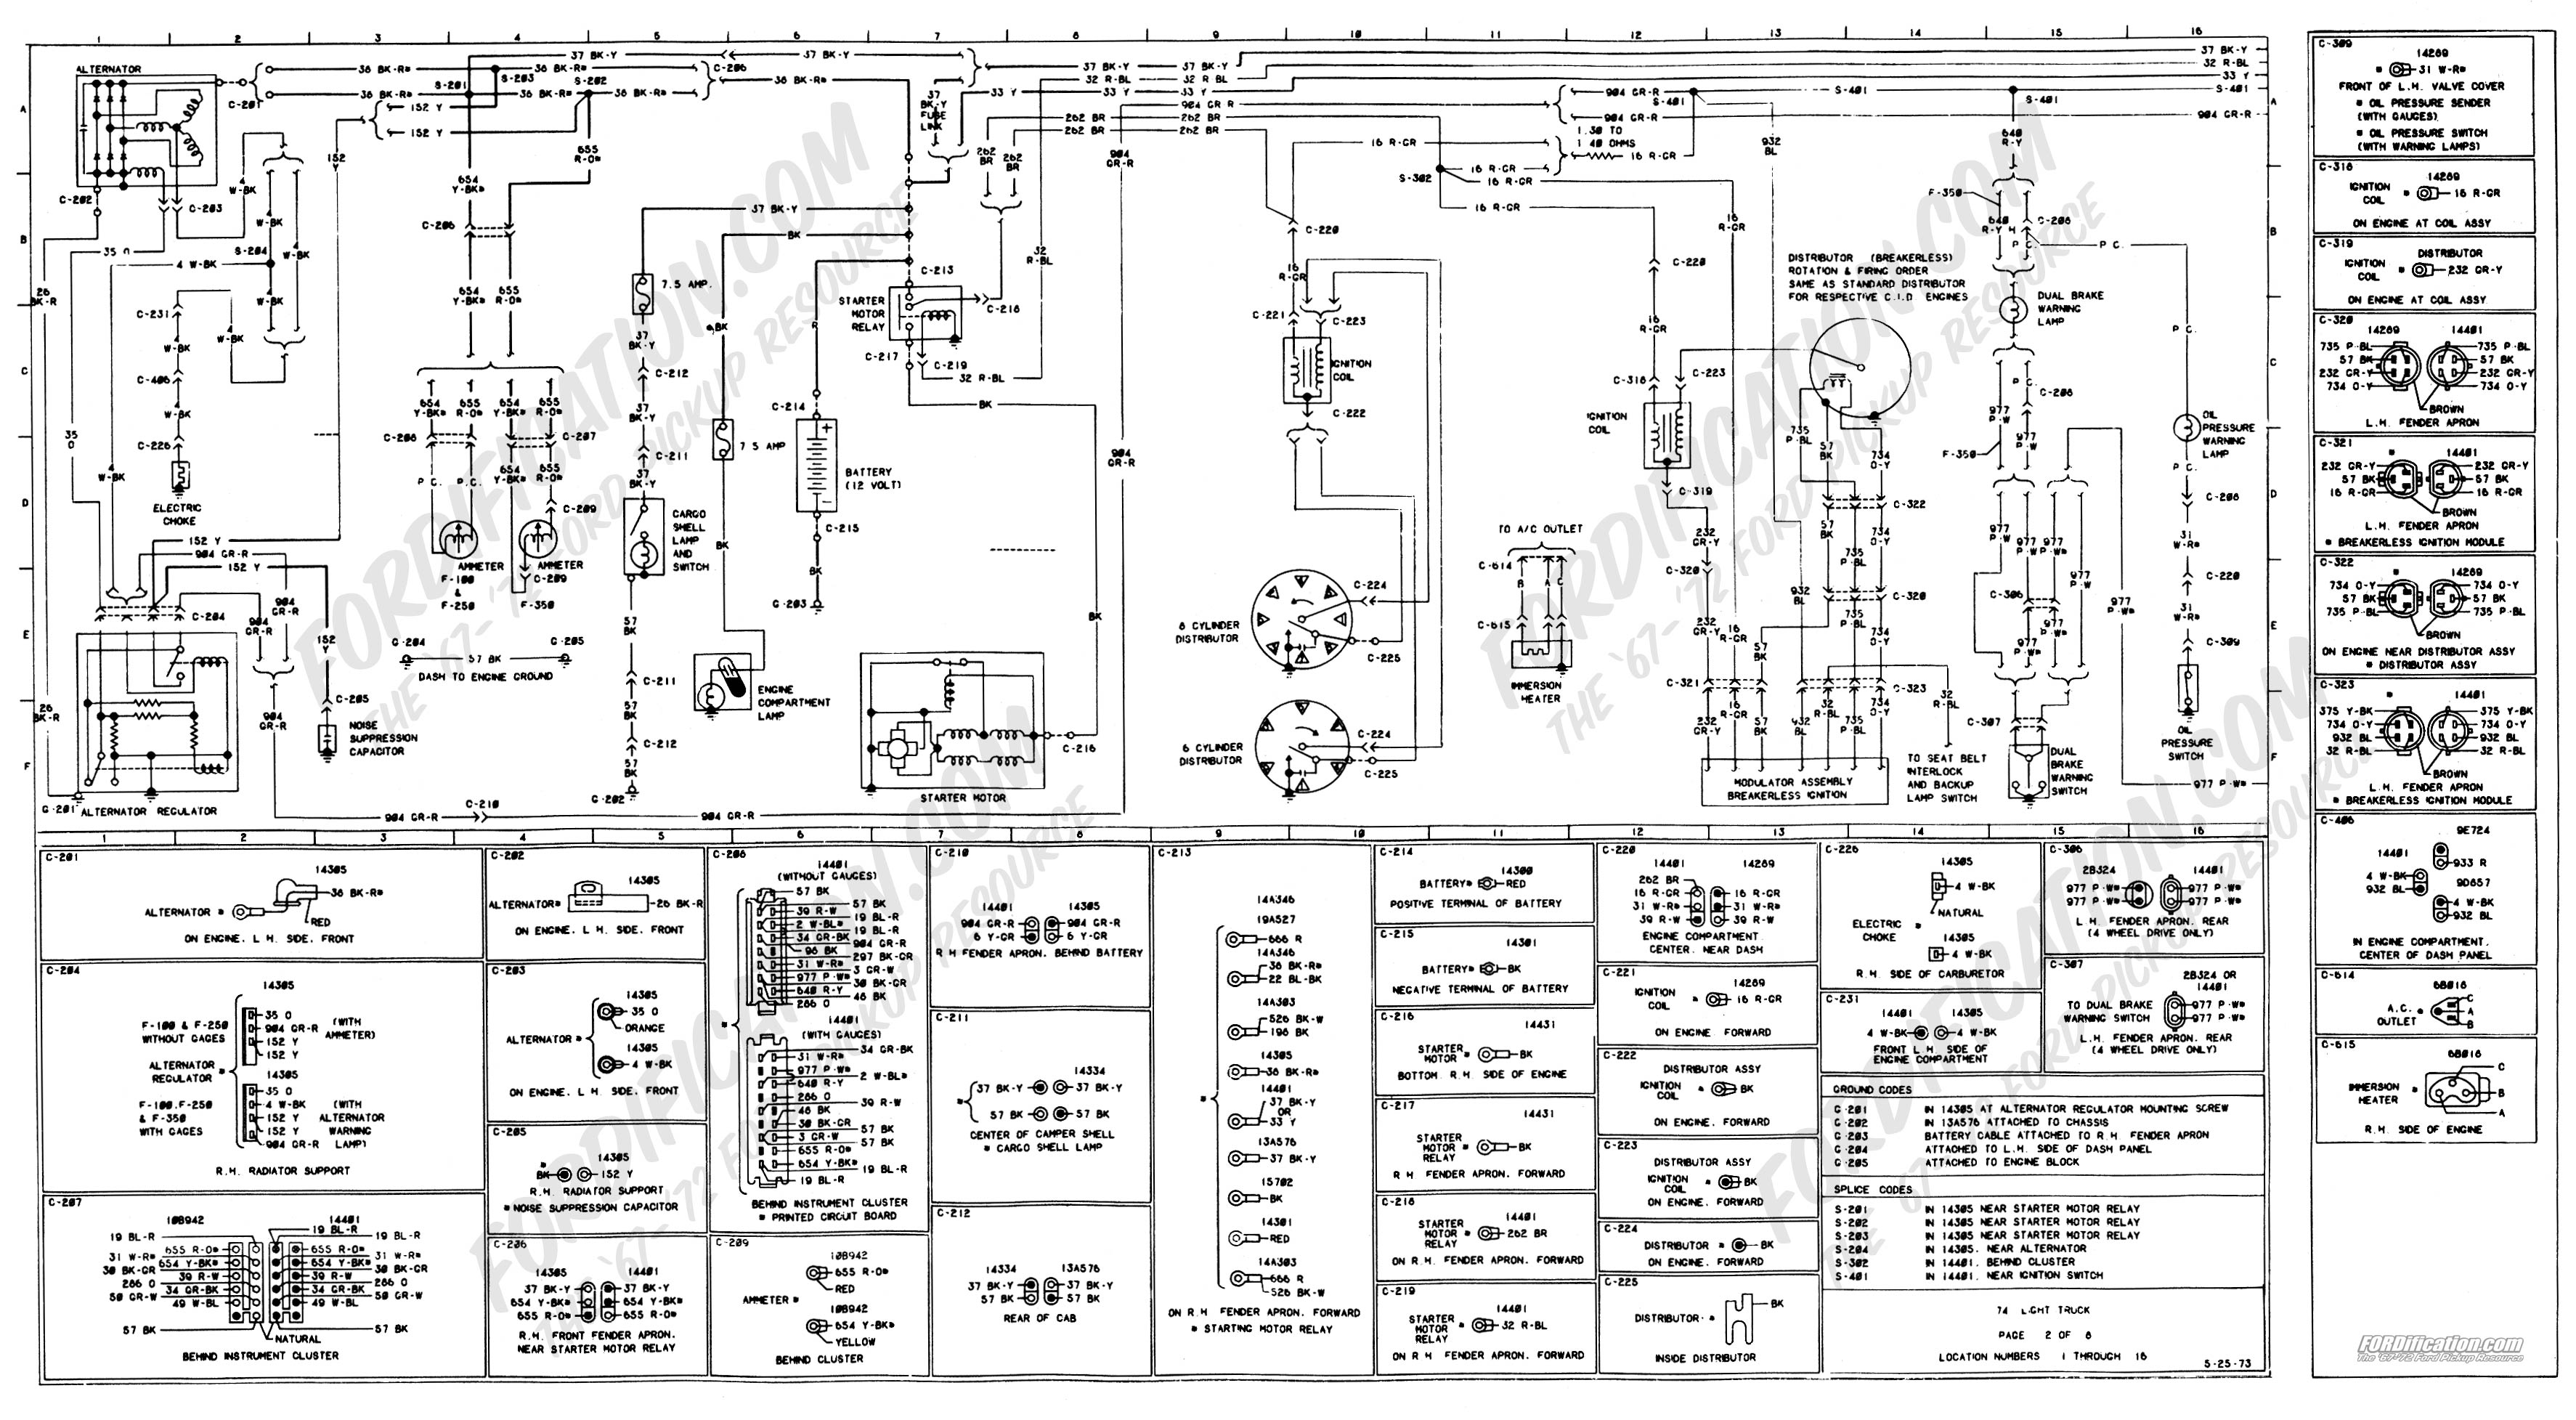 ford 9n wiring schematic wiring diagram and schematic design ford tractors 9n and 2n wiring harness